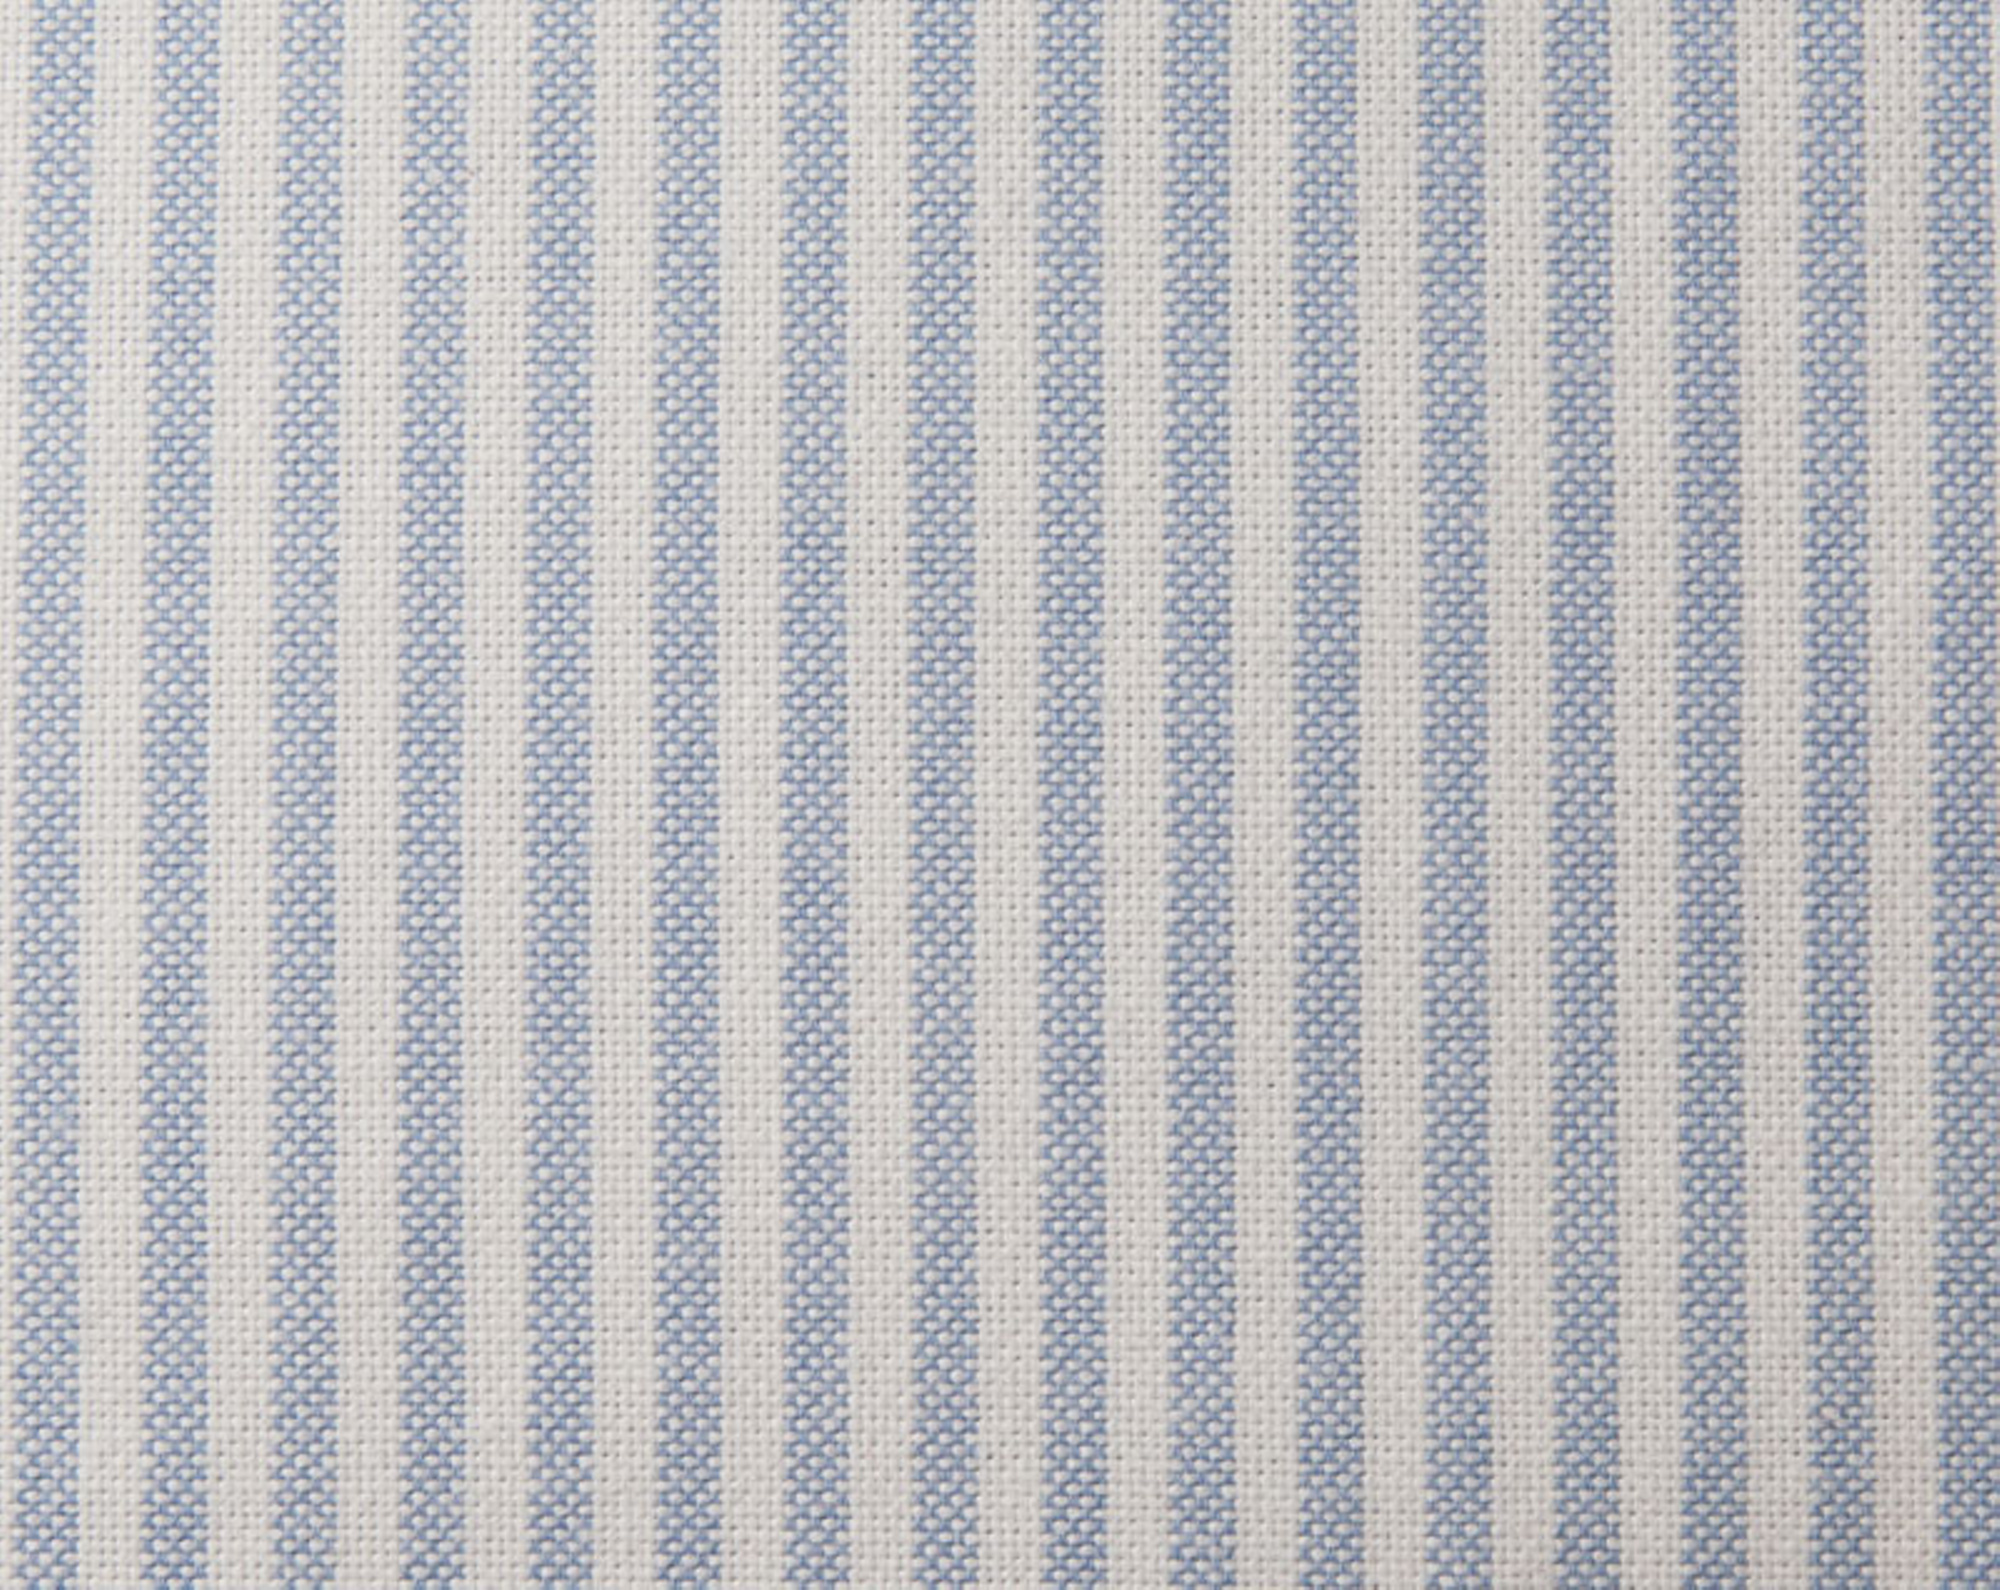 Pin Point Blue/White Flat Sheet